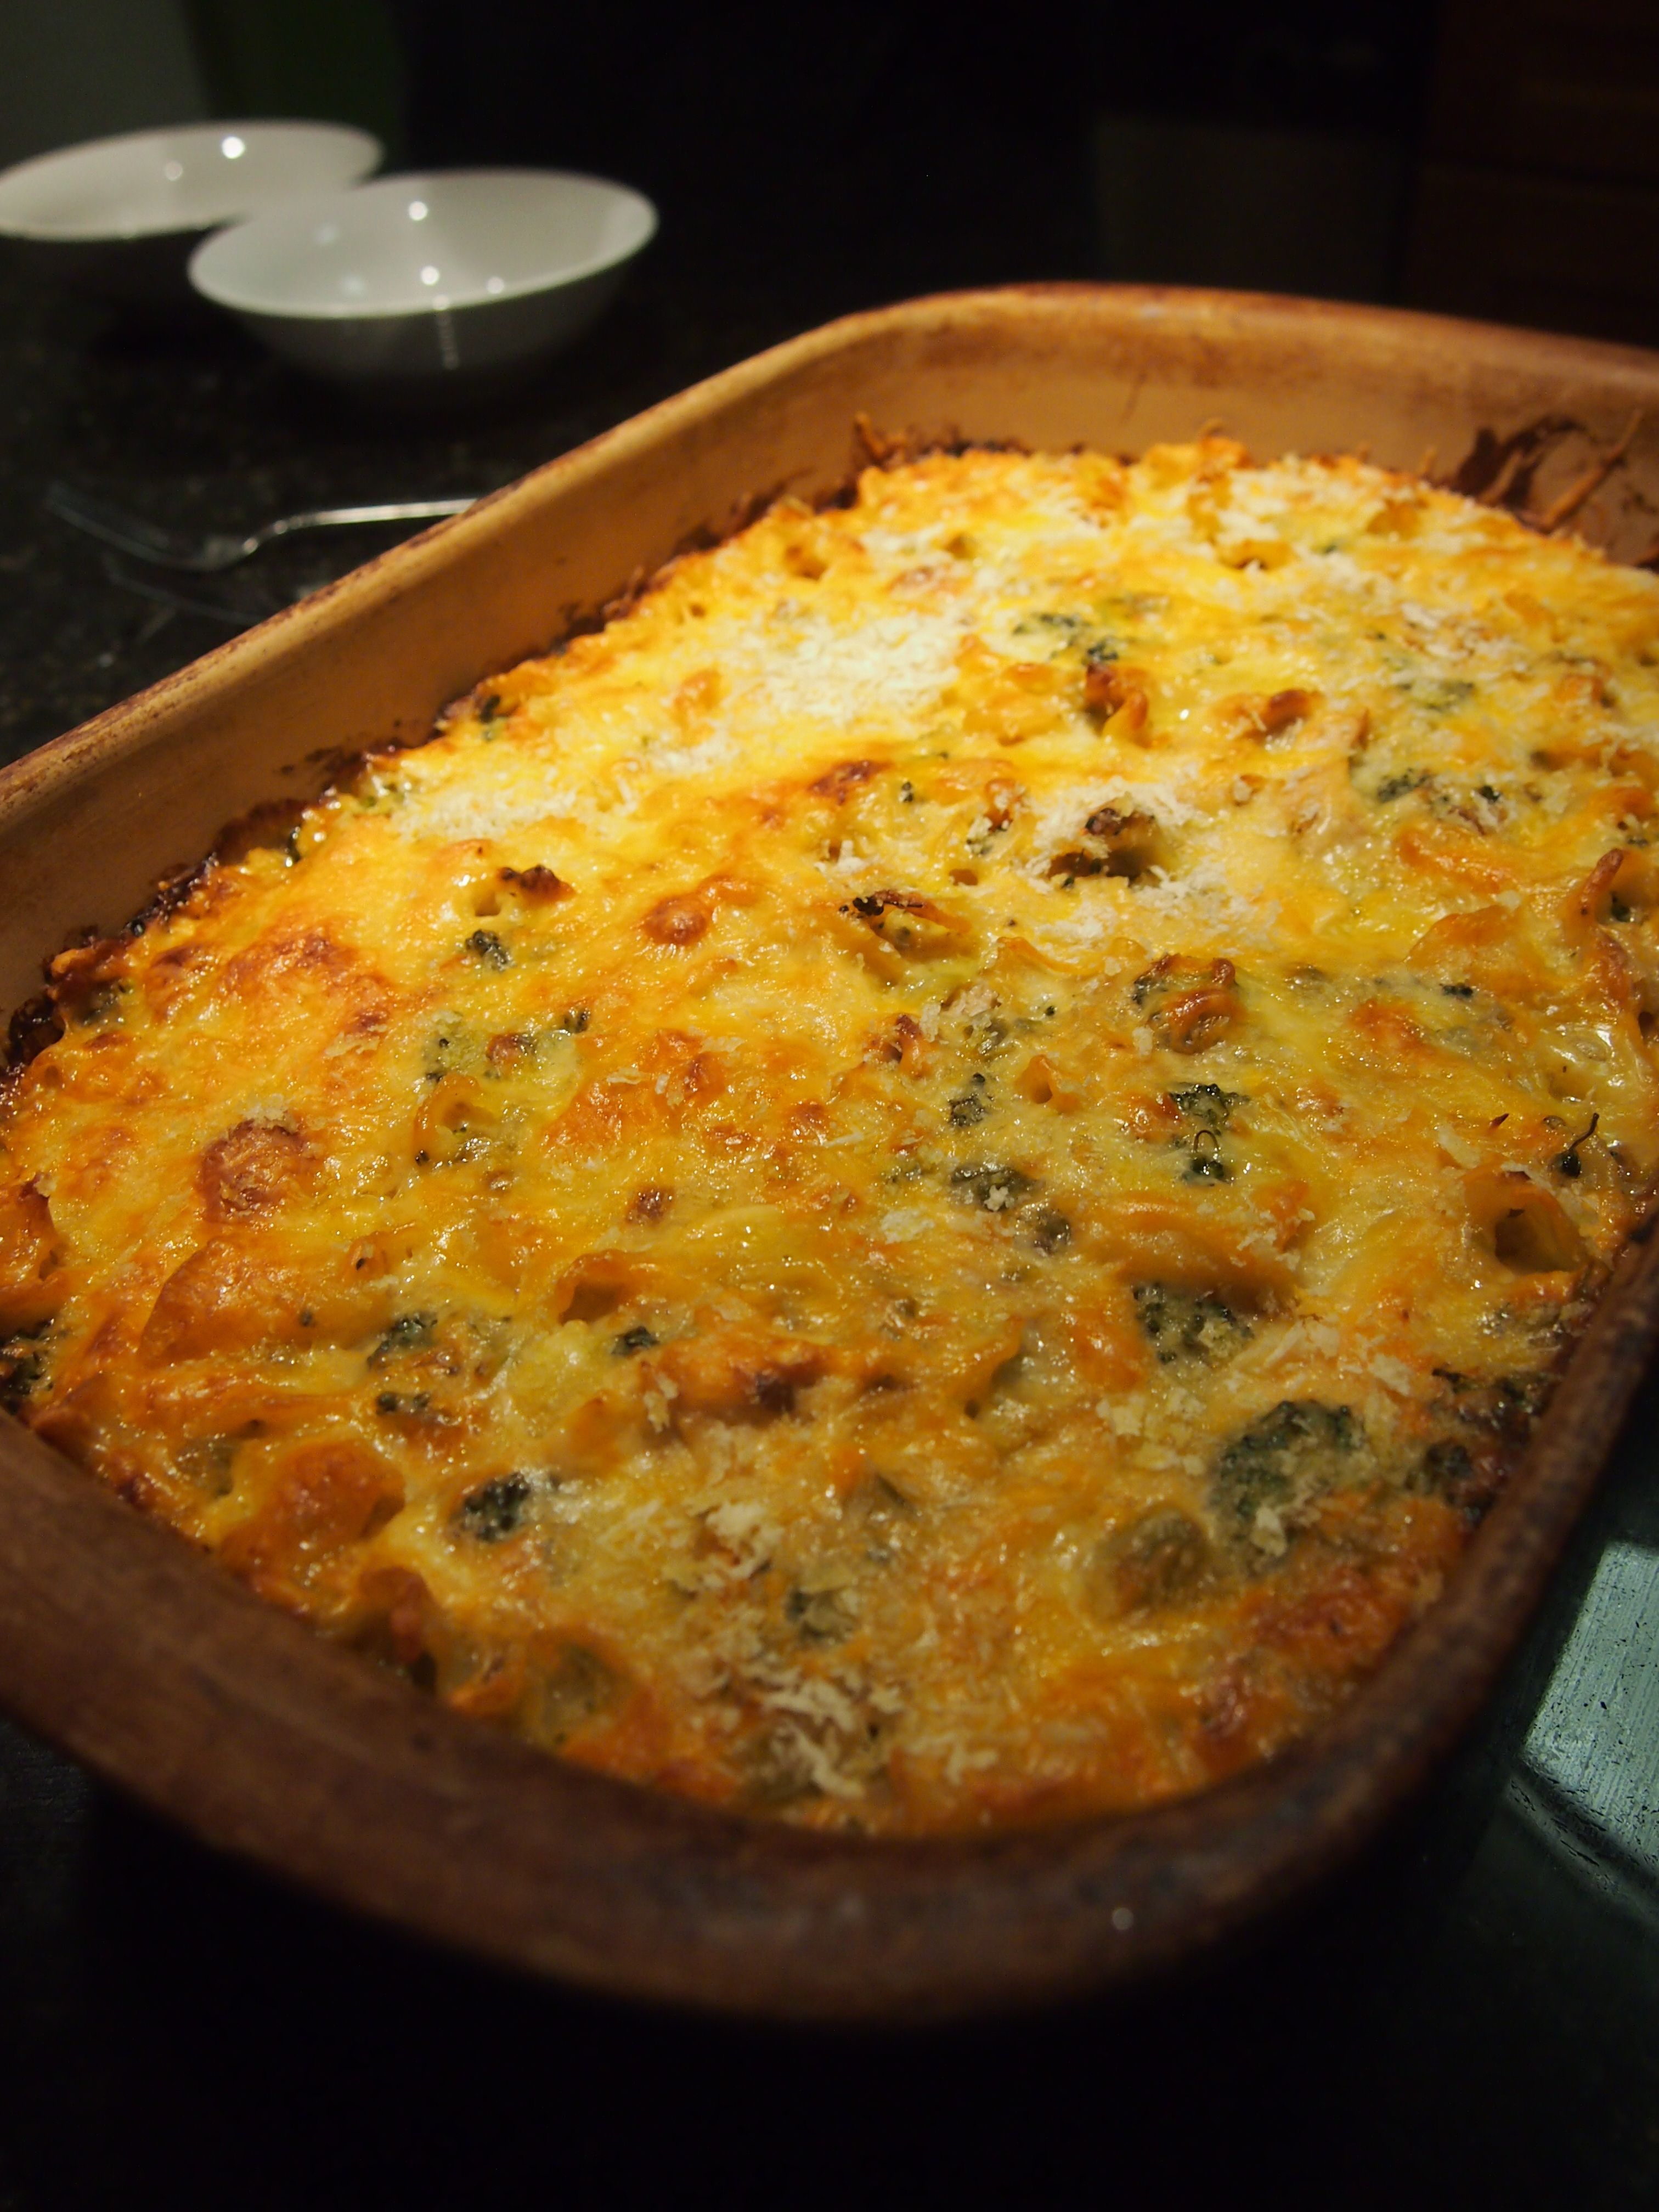 One of the best ways to use up items sitting in your refrigerator is to make a casserole. Now, I have family members who snub their noses at casserole, but honey please, I don't have any time forn...